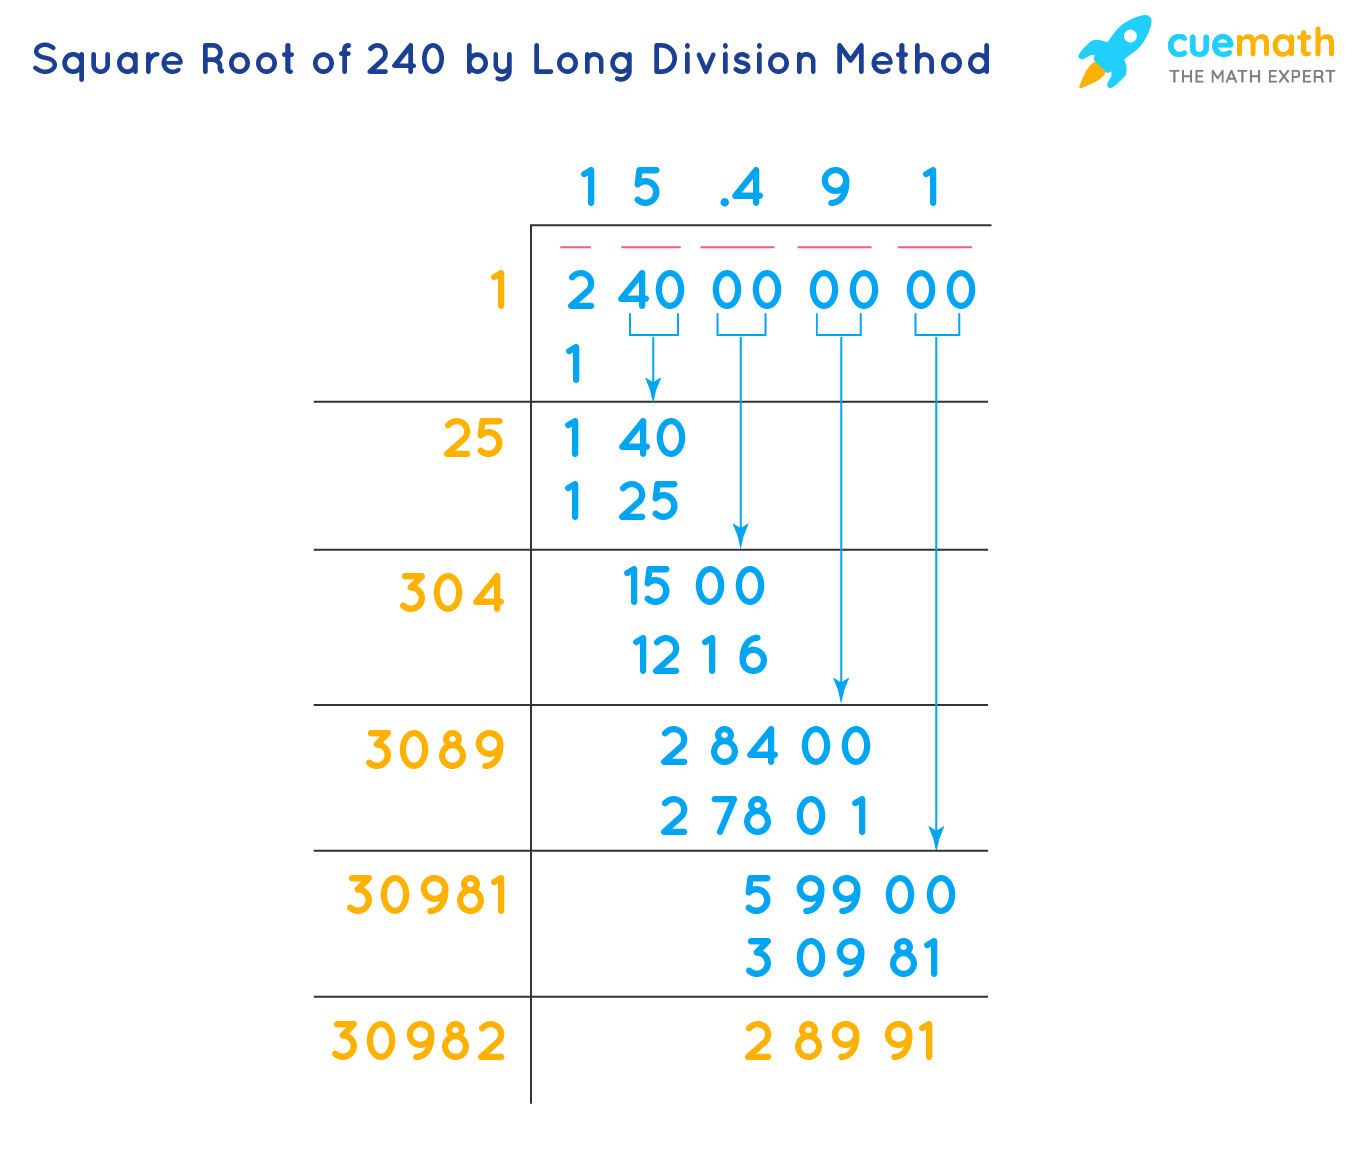 Square Root of 240 by Long Division Method